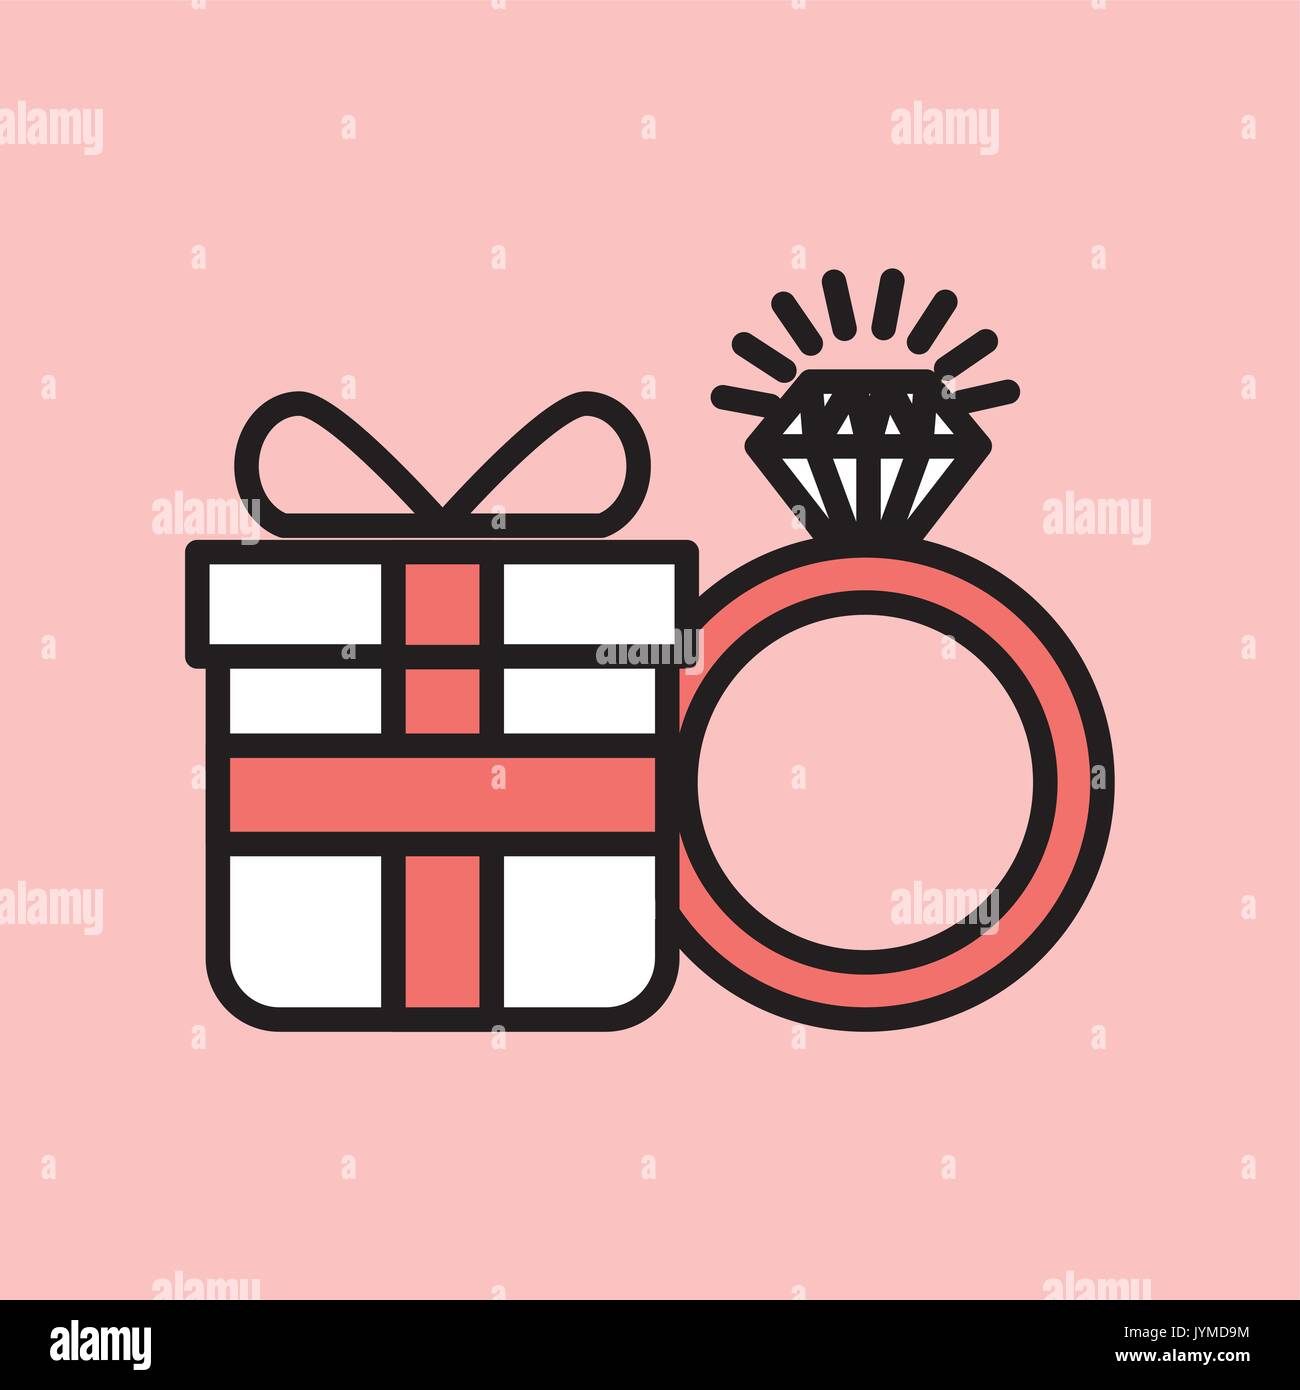 Wedding Ring Background Invitation Stock Vector Images - Alamy